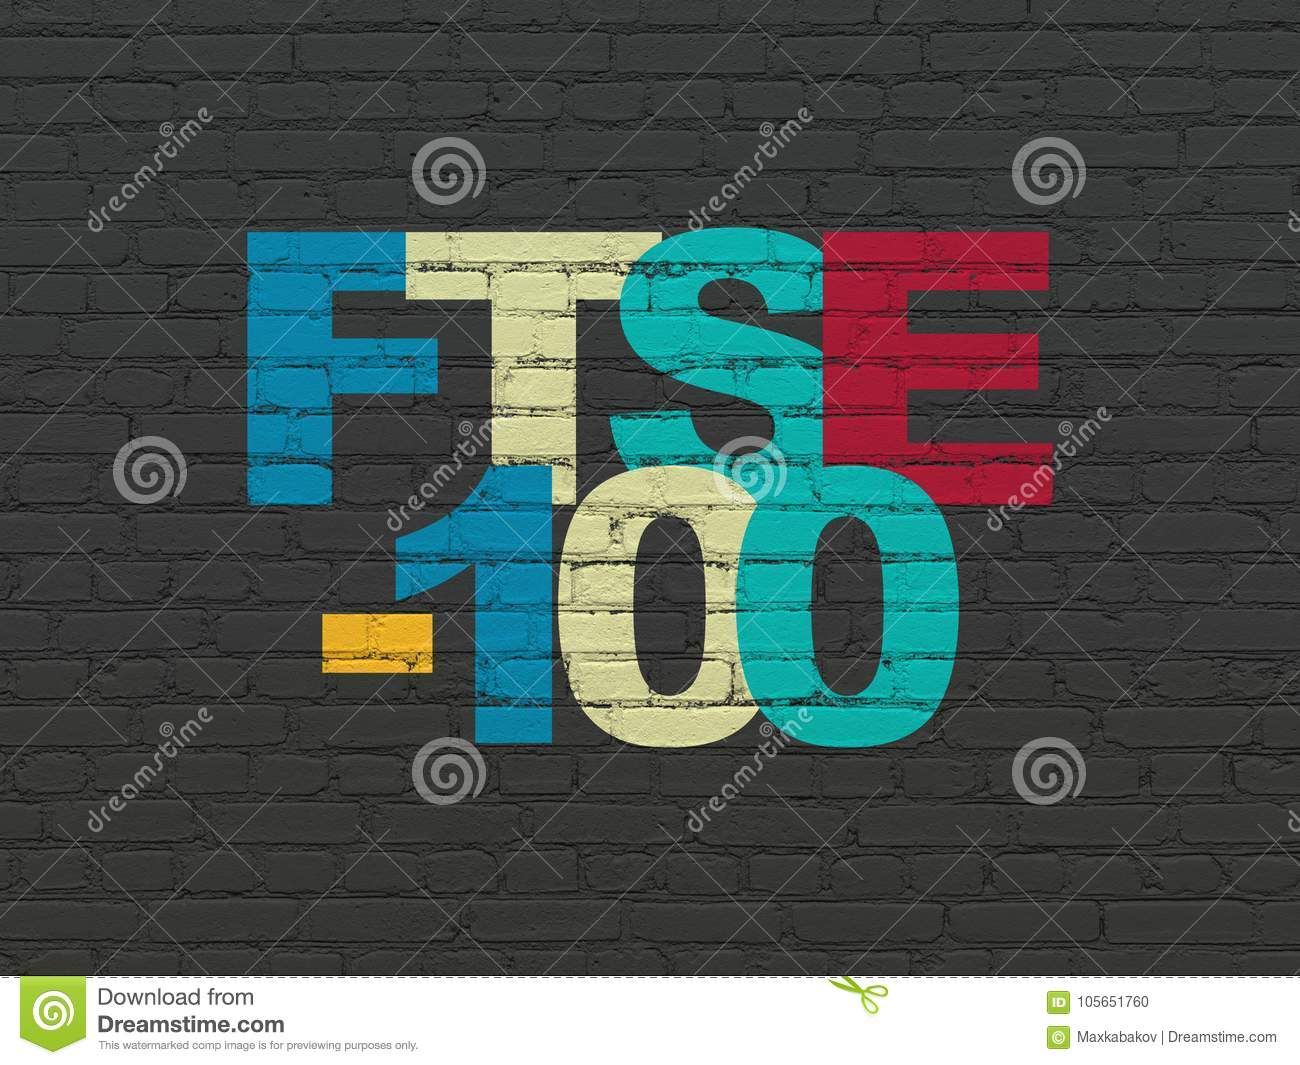 Stock Market Indexes Concept Ftse 100 On Wall Background Stock